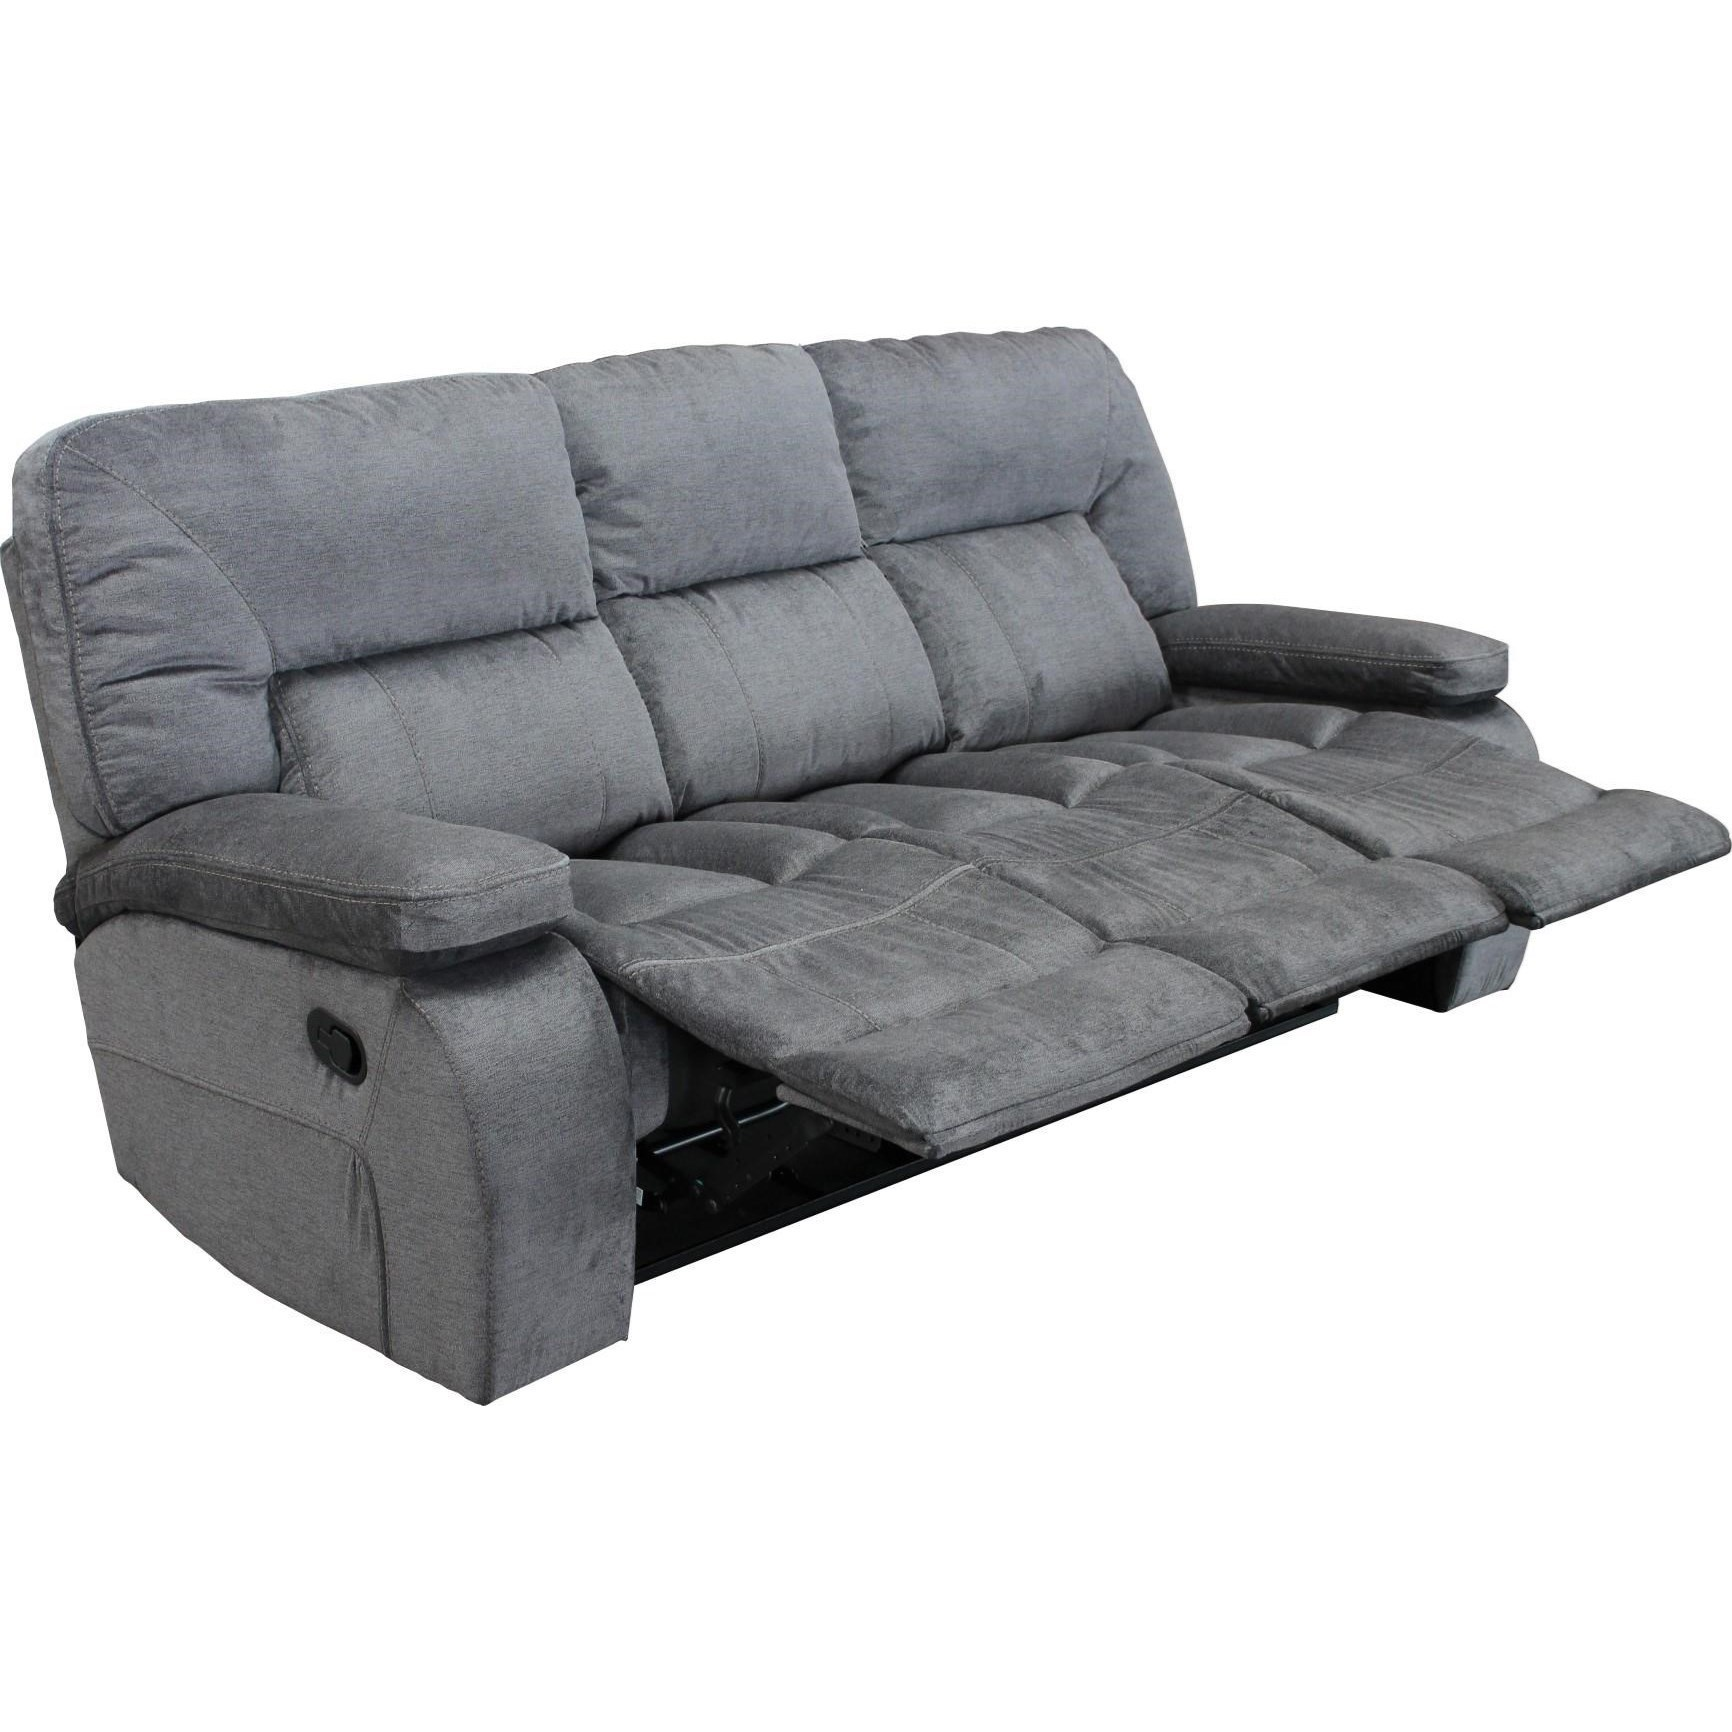 Parker Living Chapman Casual Triple Reclining Sofa with Pillow Arms - Coconis Furniture u0026 Mattress 1st - Reclining Sofas  sc 1 st  Coconis Furniture & Parker Living Chapman Casual Triple Reclining Sofa with Pillow ... islam-shia.org